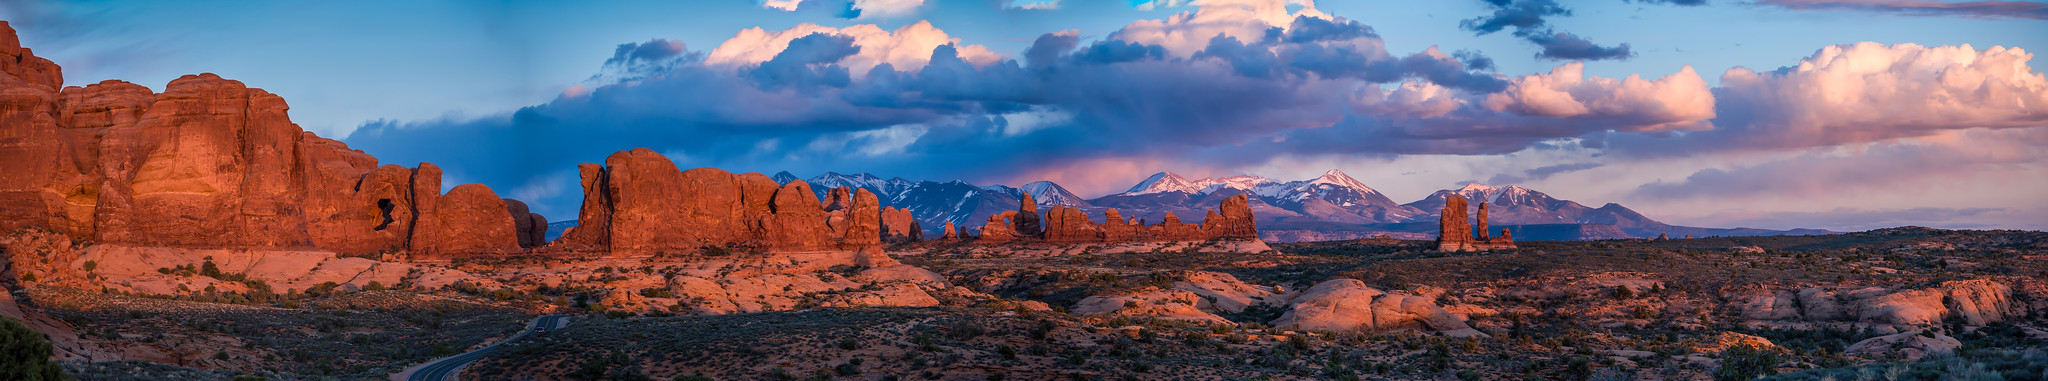 Turret Arch, Double Arch, Sunset Panorama